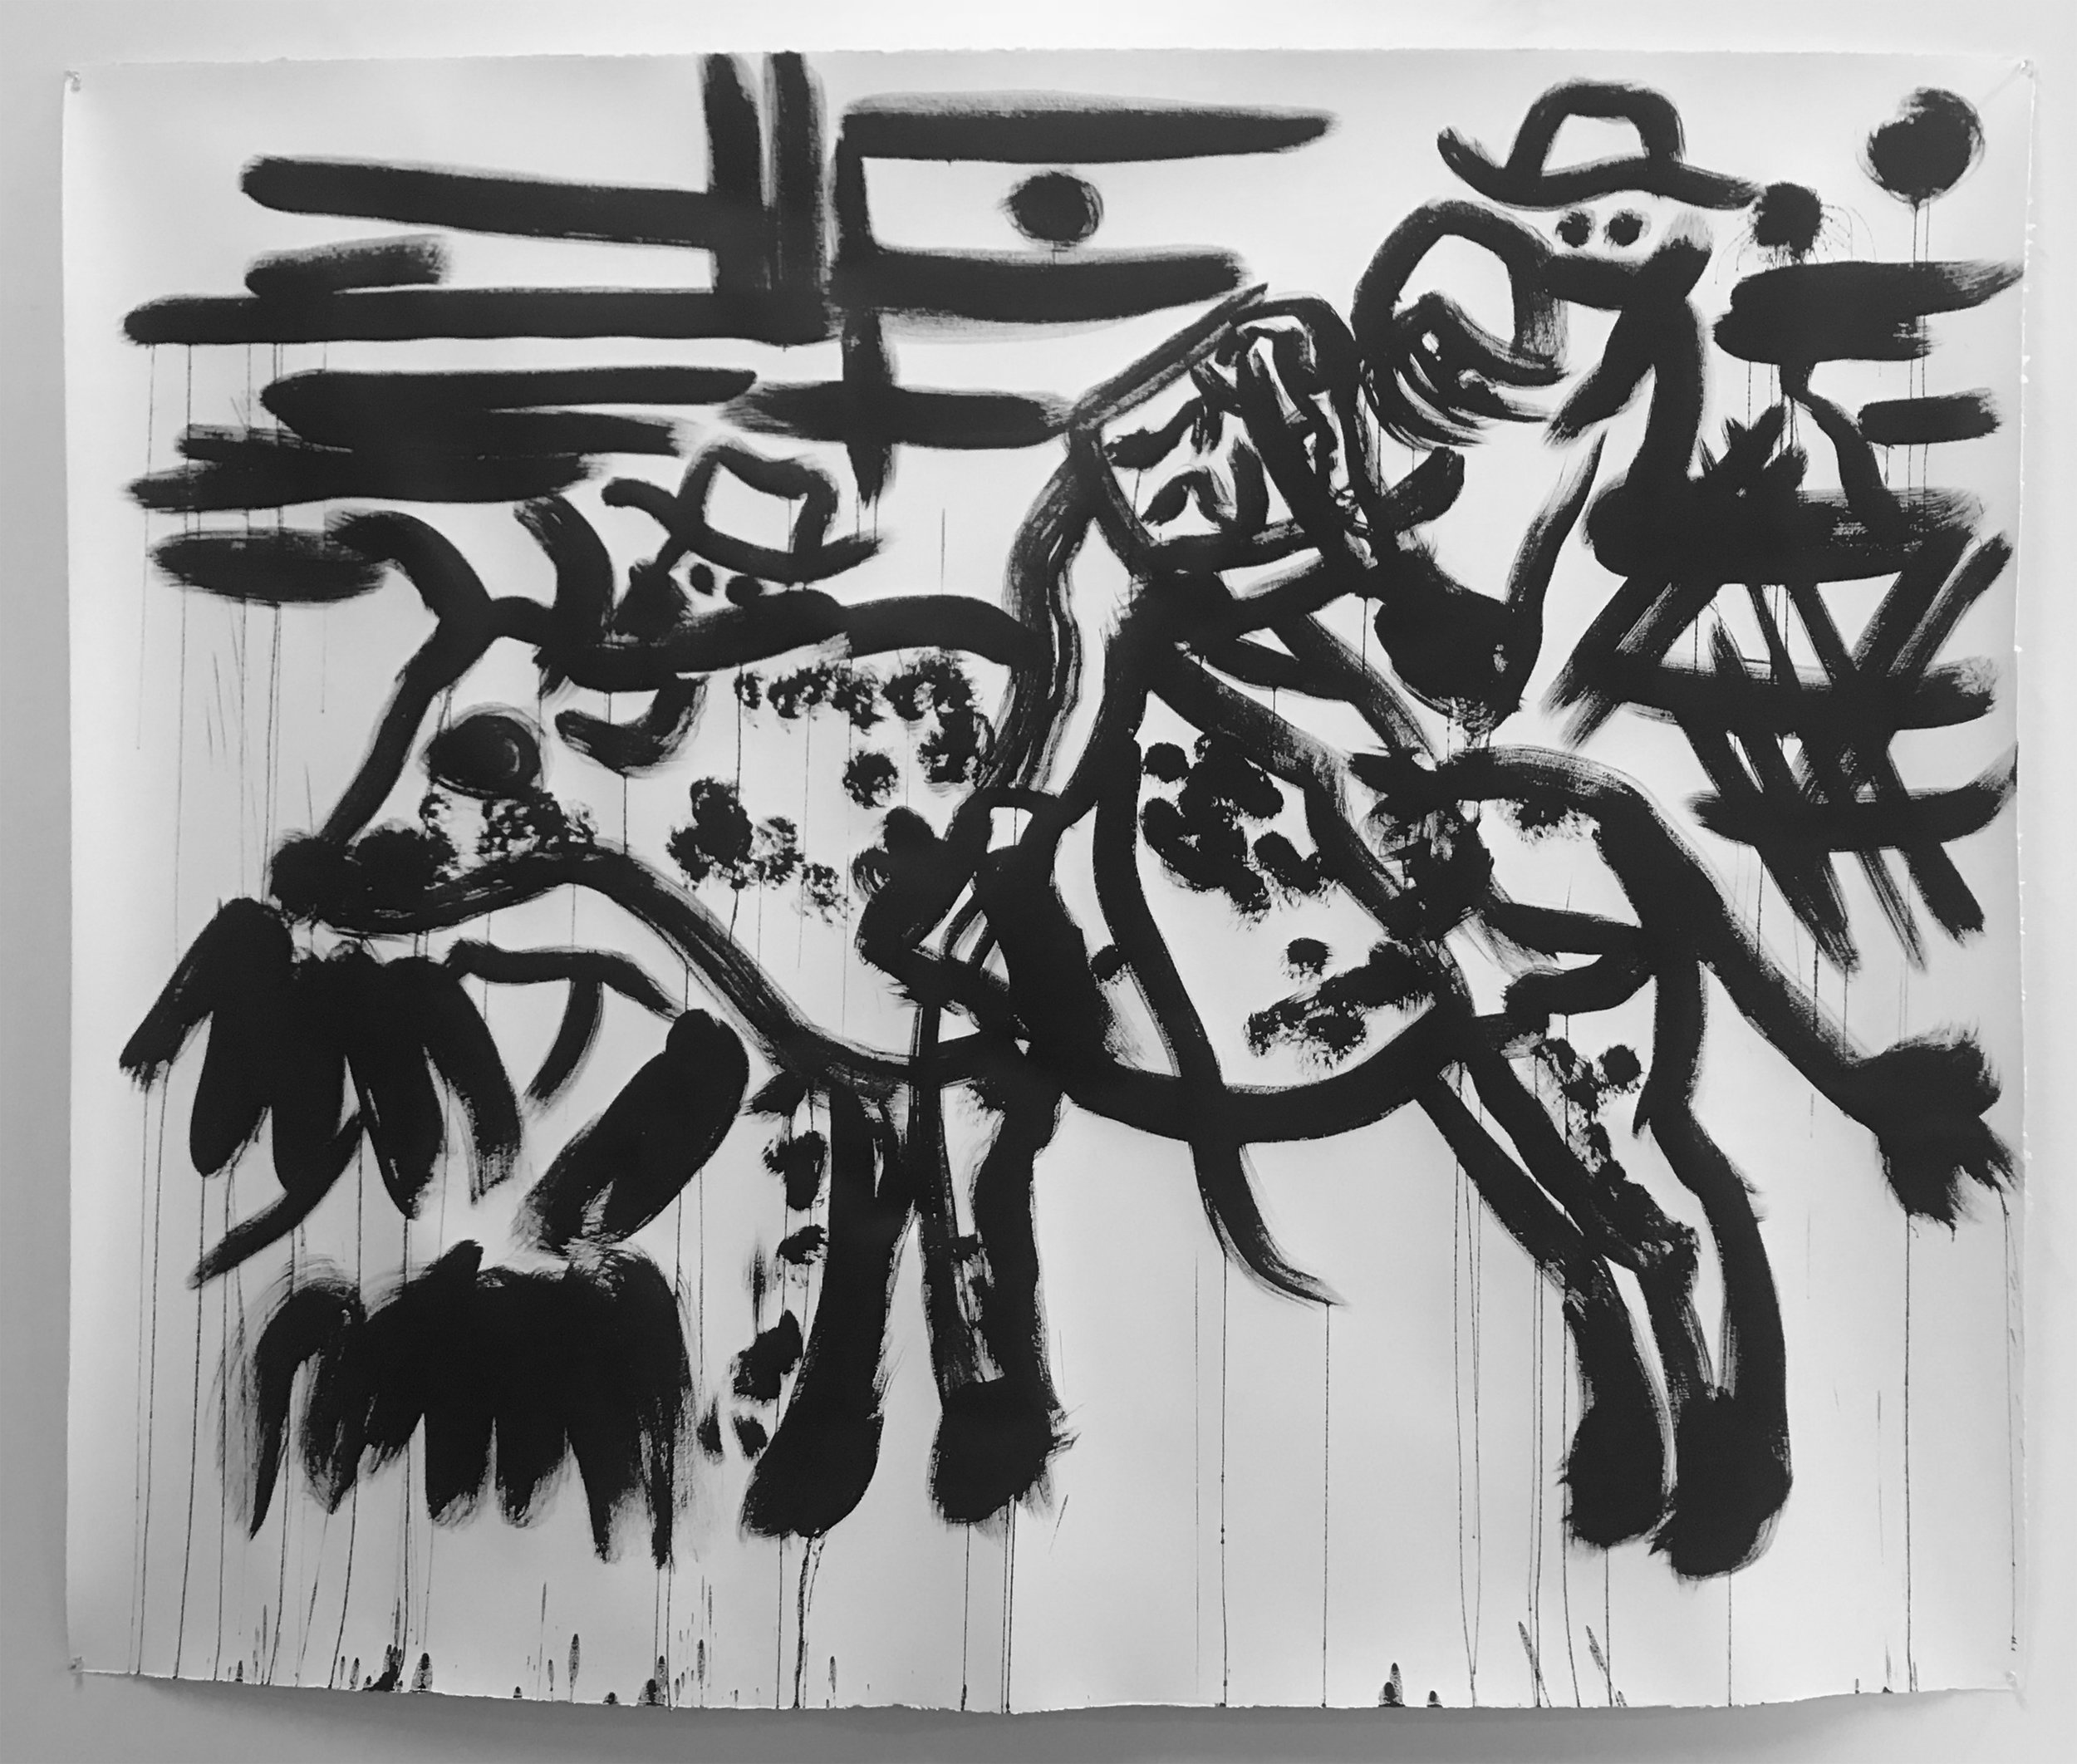 The Rider, 2018, sumi ink on paper, 51 x 55 inches